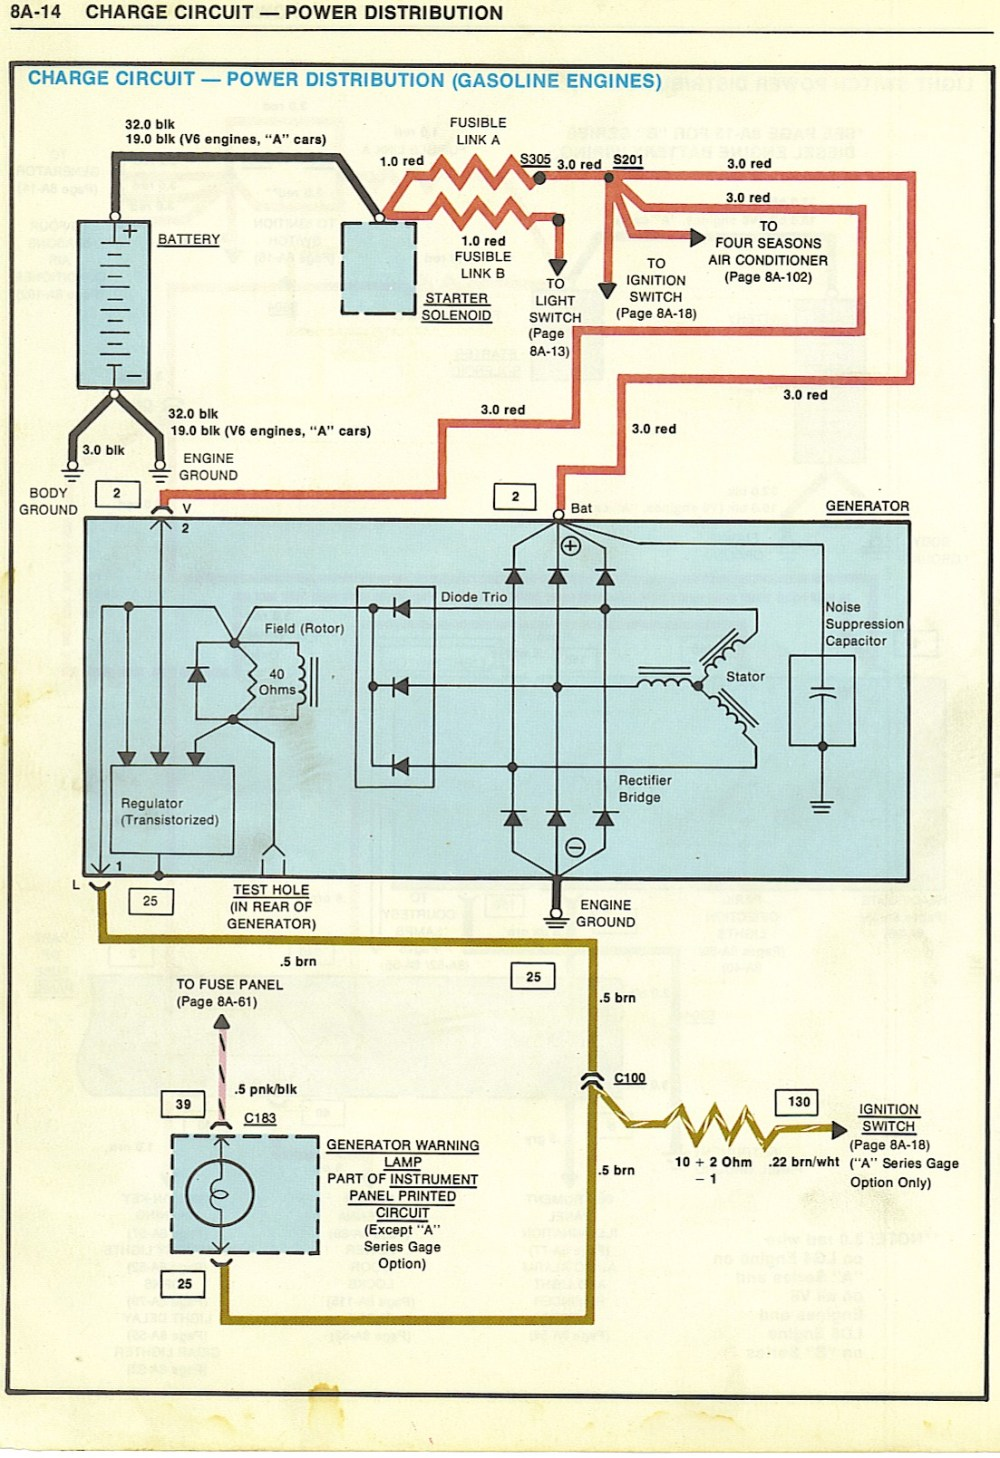 medium resolution of wiring diagrams 1978 chevy monte carlo wiring diagram 78 monte carlo wiring diagram